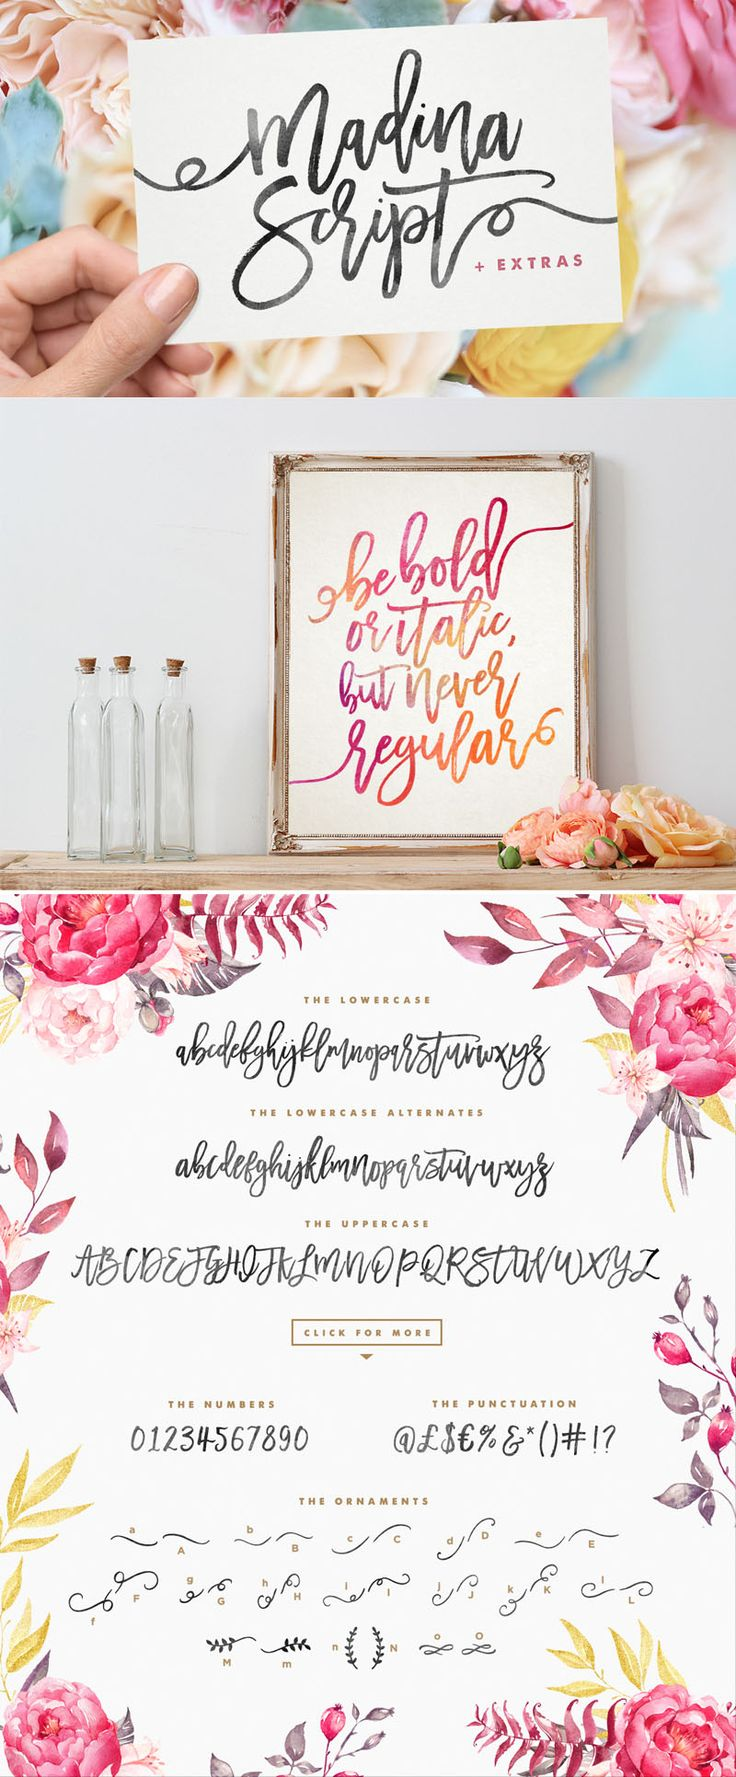 My Latest Font Obsessions | Key Lime Digital Designs | Bloglovin'                                                                                                                                                                                 More